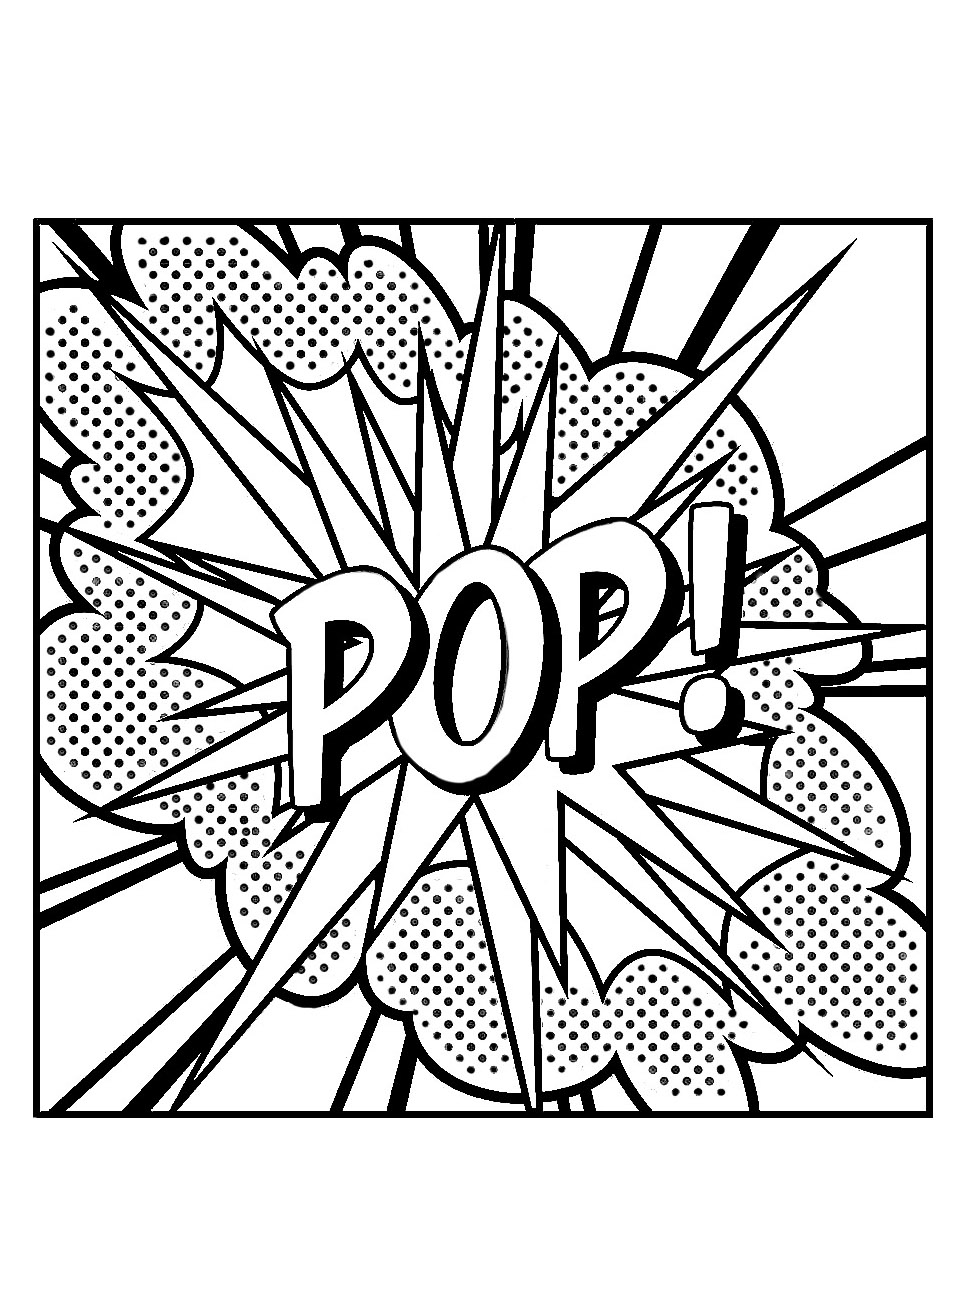 POP Coloring page, inspired by Roy Lichtenstein